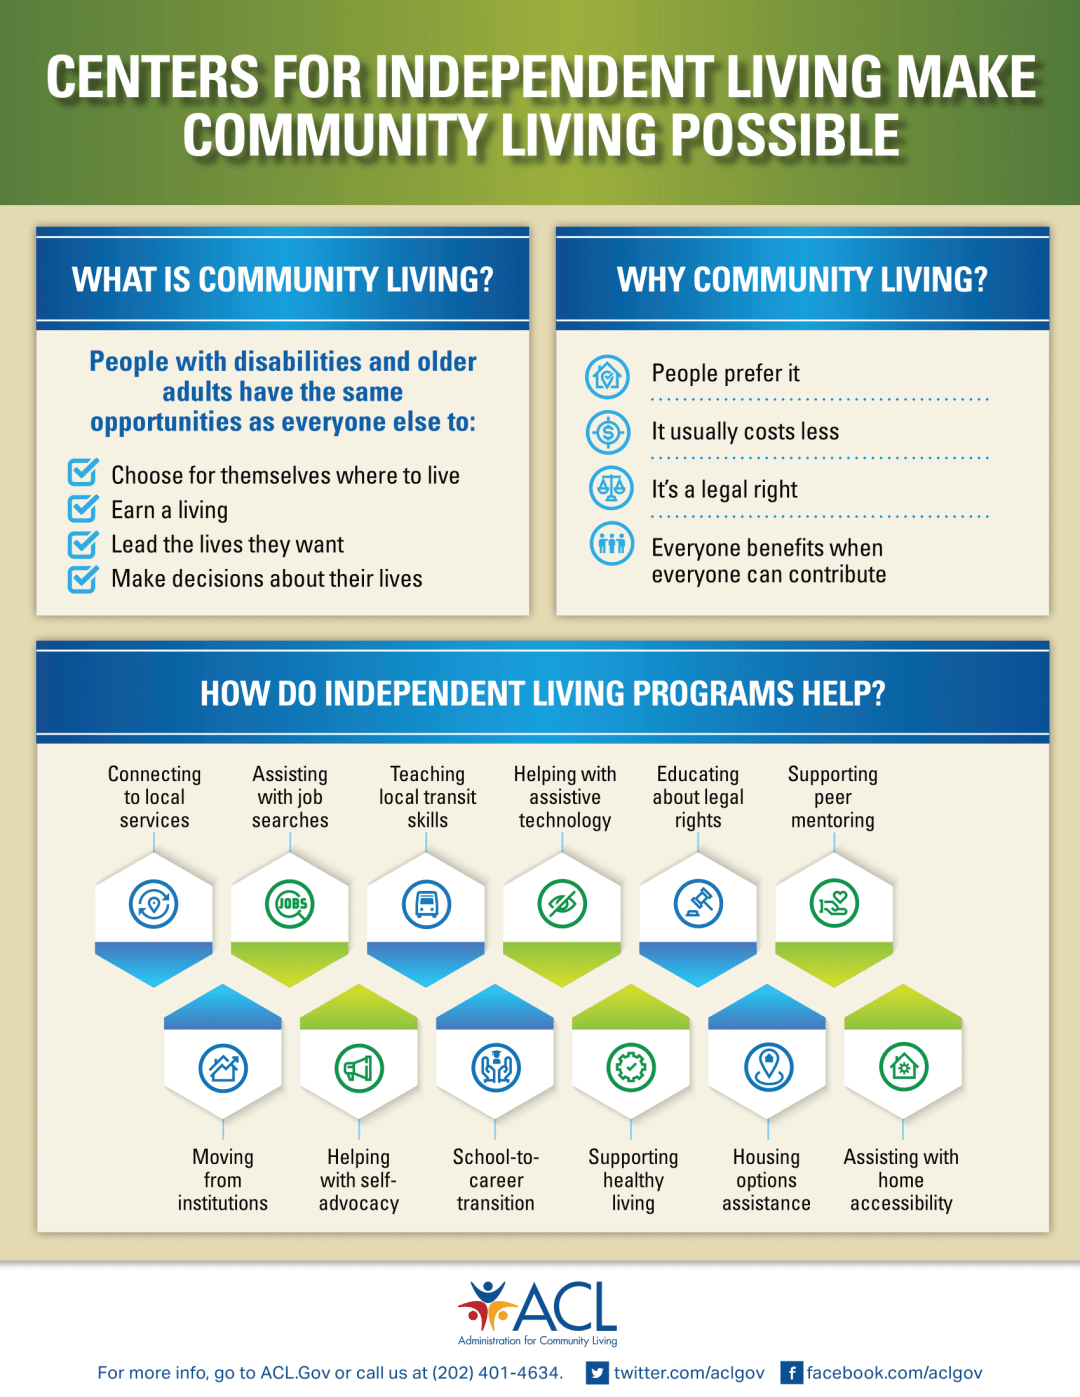 a graphic showing how centers for independentent living make community living possible